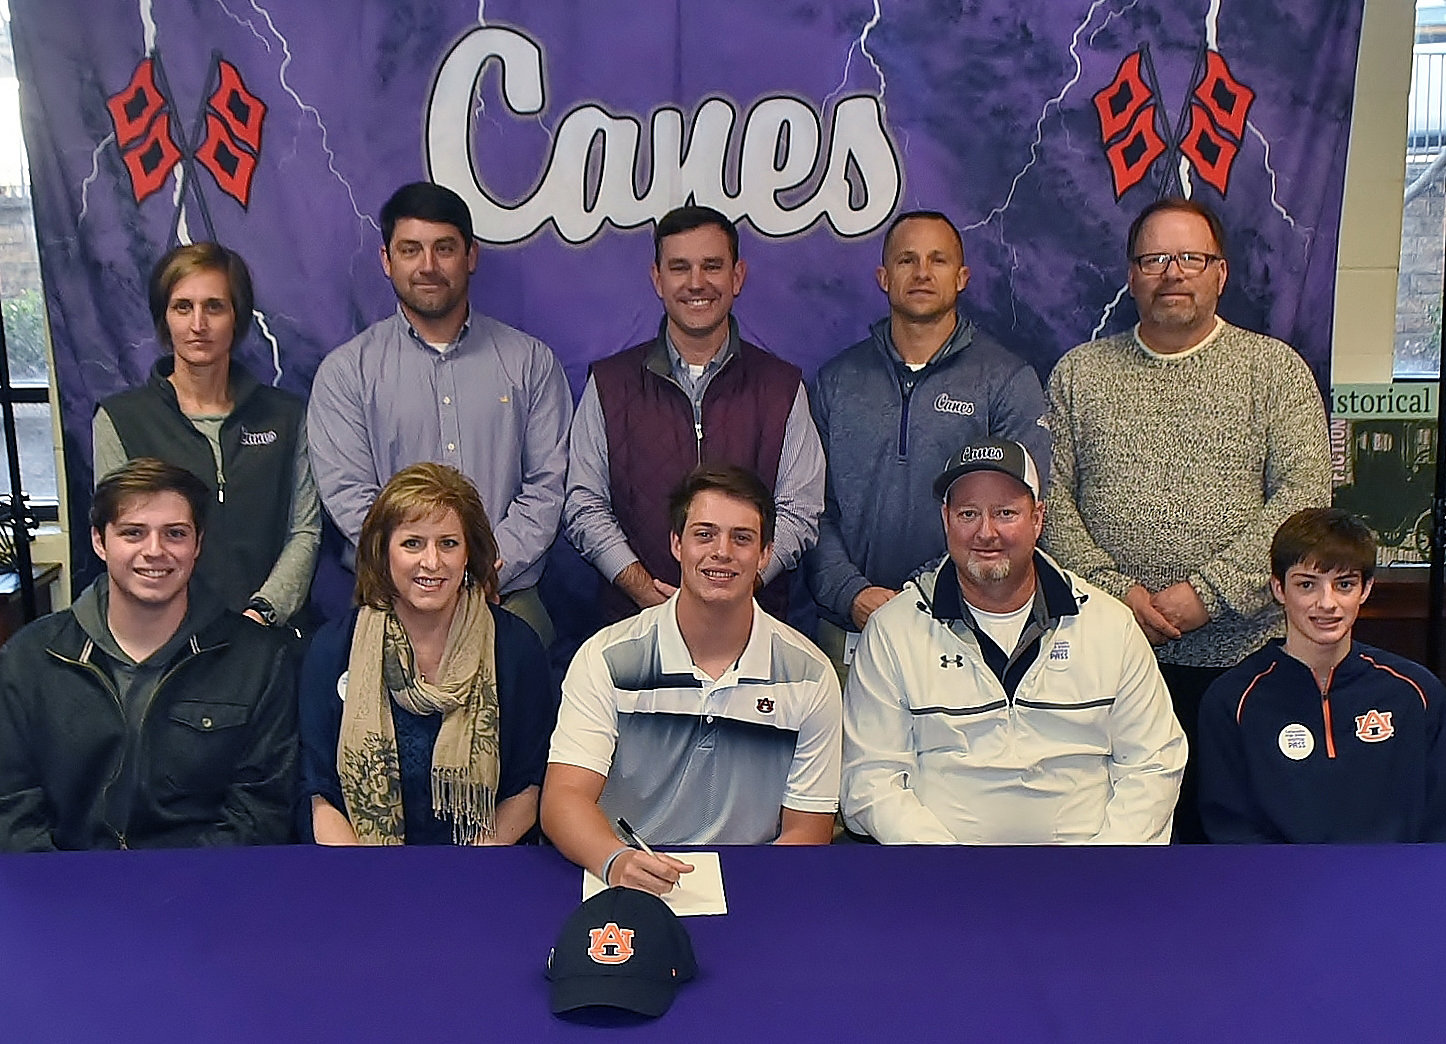 On Wednesday, Cartersville High senior Mason Barnett celebrated the signing of his national letter of intent to play baseball at Auburn. On hand to join him were, from left, front row: Miller Barnett, brother; Merrie Barnett, mother; Greg Barnett, father; Andy Barnett, brother; back row, Shelley Tierce, CHS principal; Brandon Patch, CHS assistant baseball coach; Kyle Tucker, CHS head baseball coach; Corey Gochee, CHS assistant baseball coach; and Darrell Demastus, CHS athletic director.